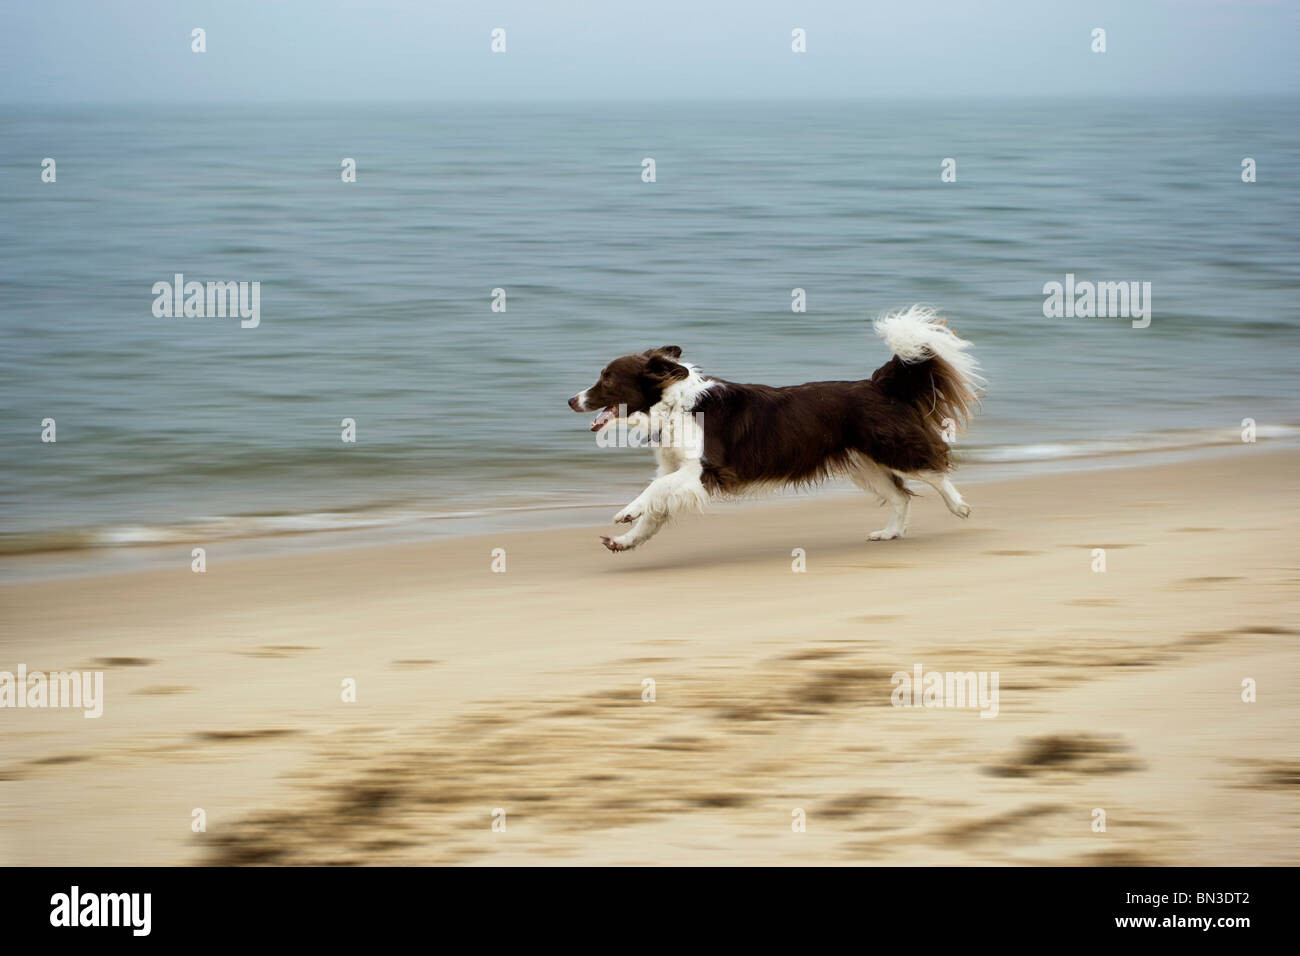 Border Collie running along sandy beach, Sylt, Germany, side view - Stock Image